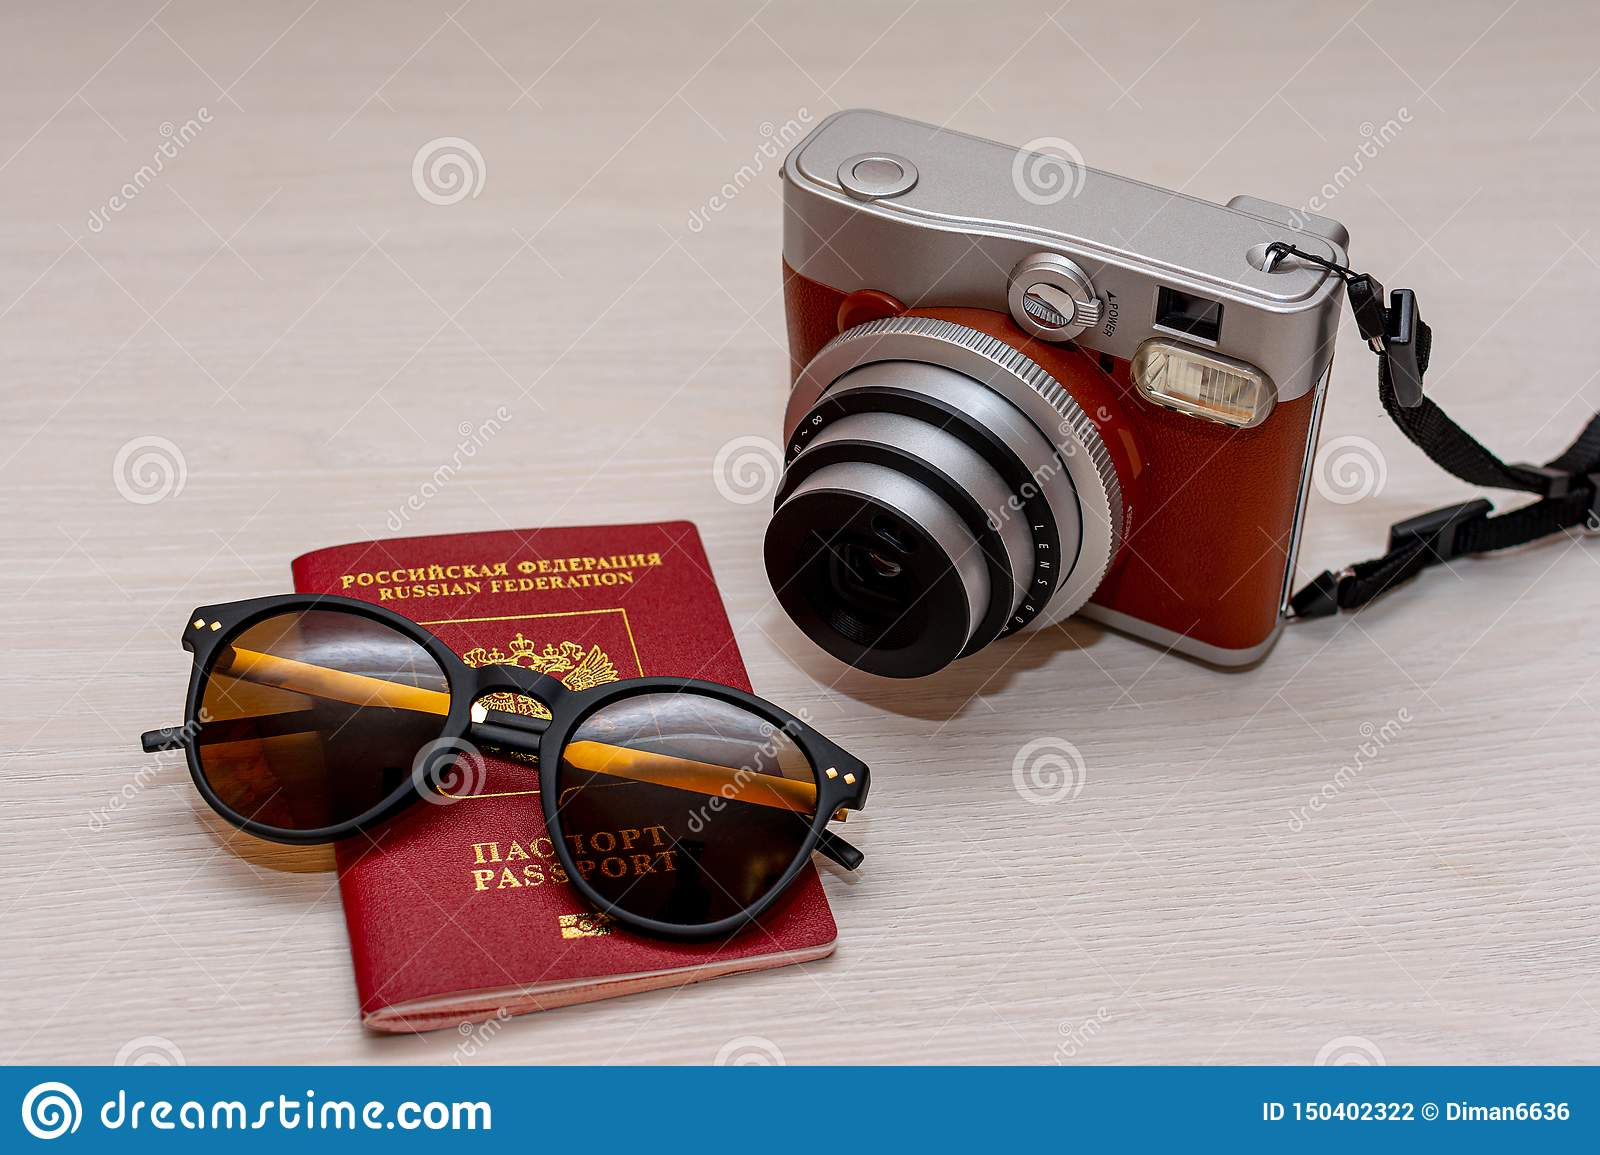 Sunglasses with the passport of a citizen of the Russian Federation and an instant photo camera on a white wooden background